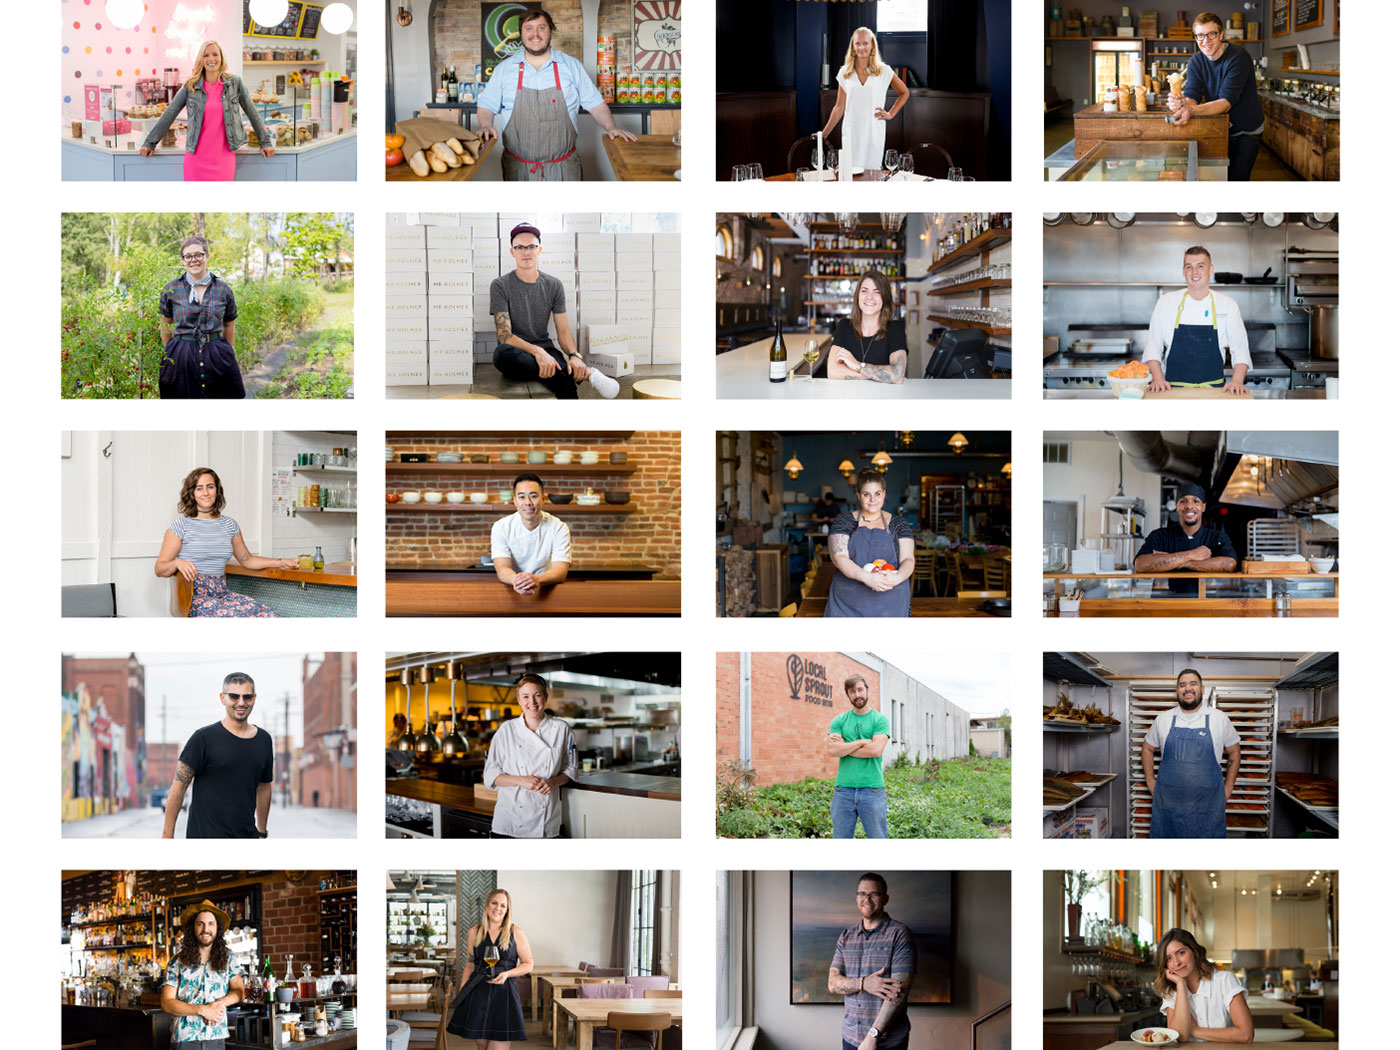 zagats food related 30 under 30